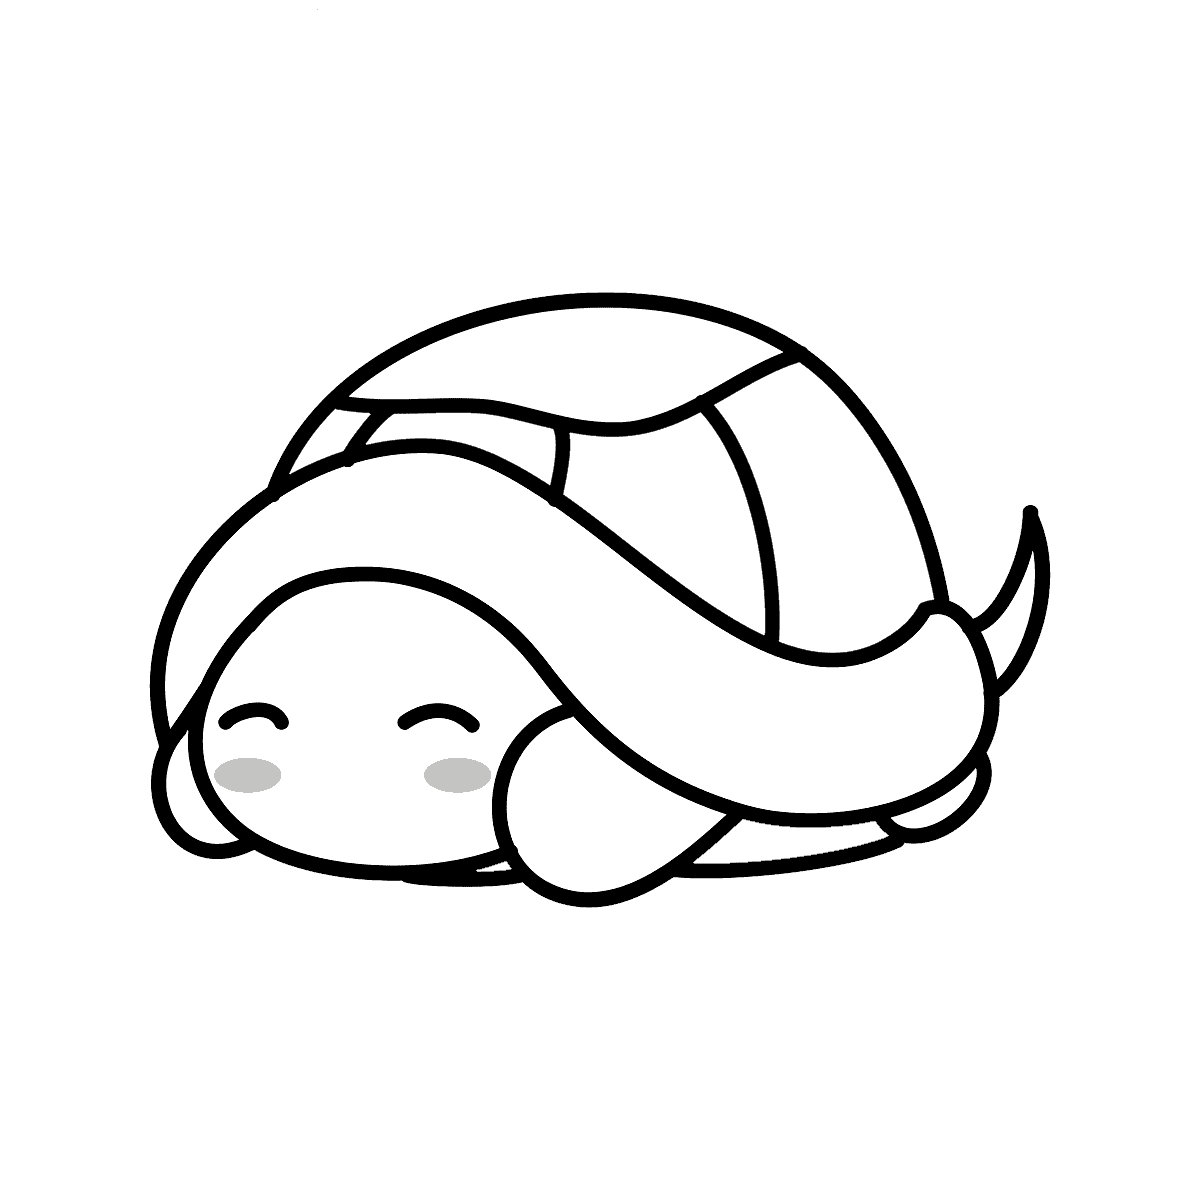 Cute turtle coloring page